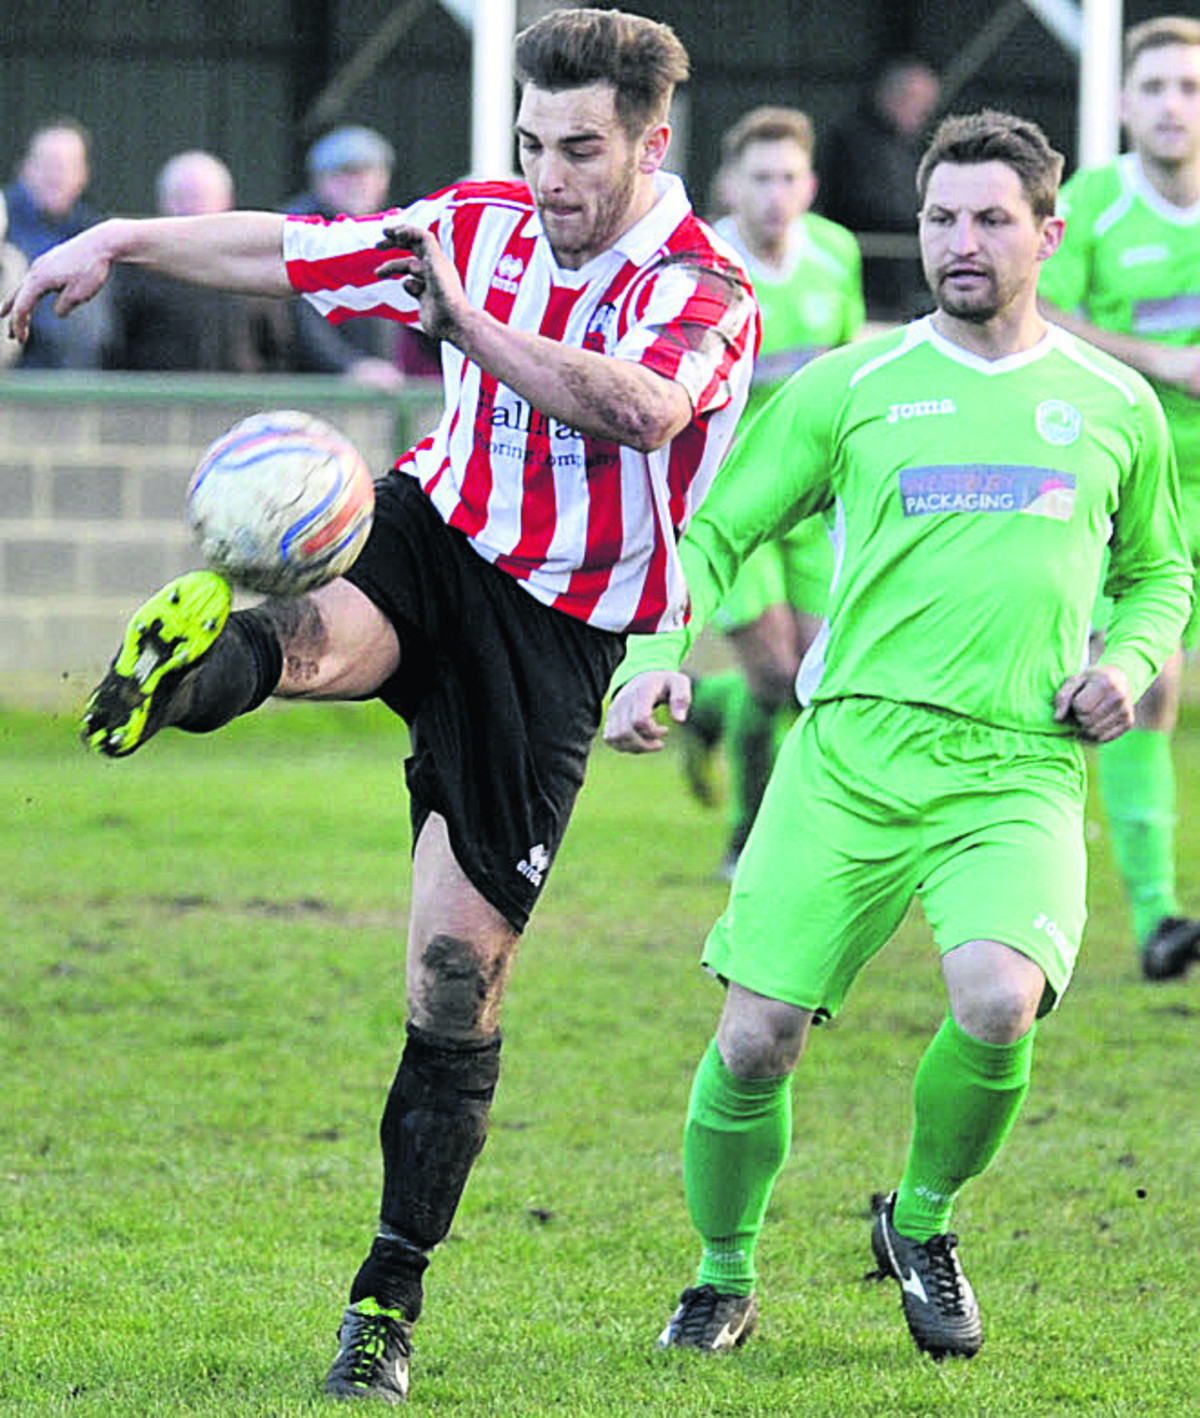 Devizes Town's Jamie McLaughlin in possession during his side's defeat to Westbury United on Saturday